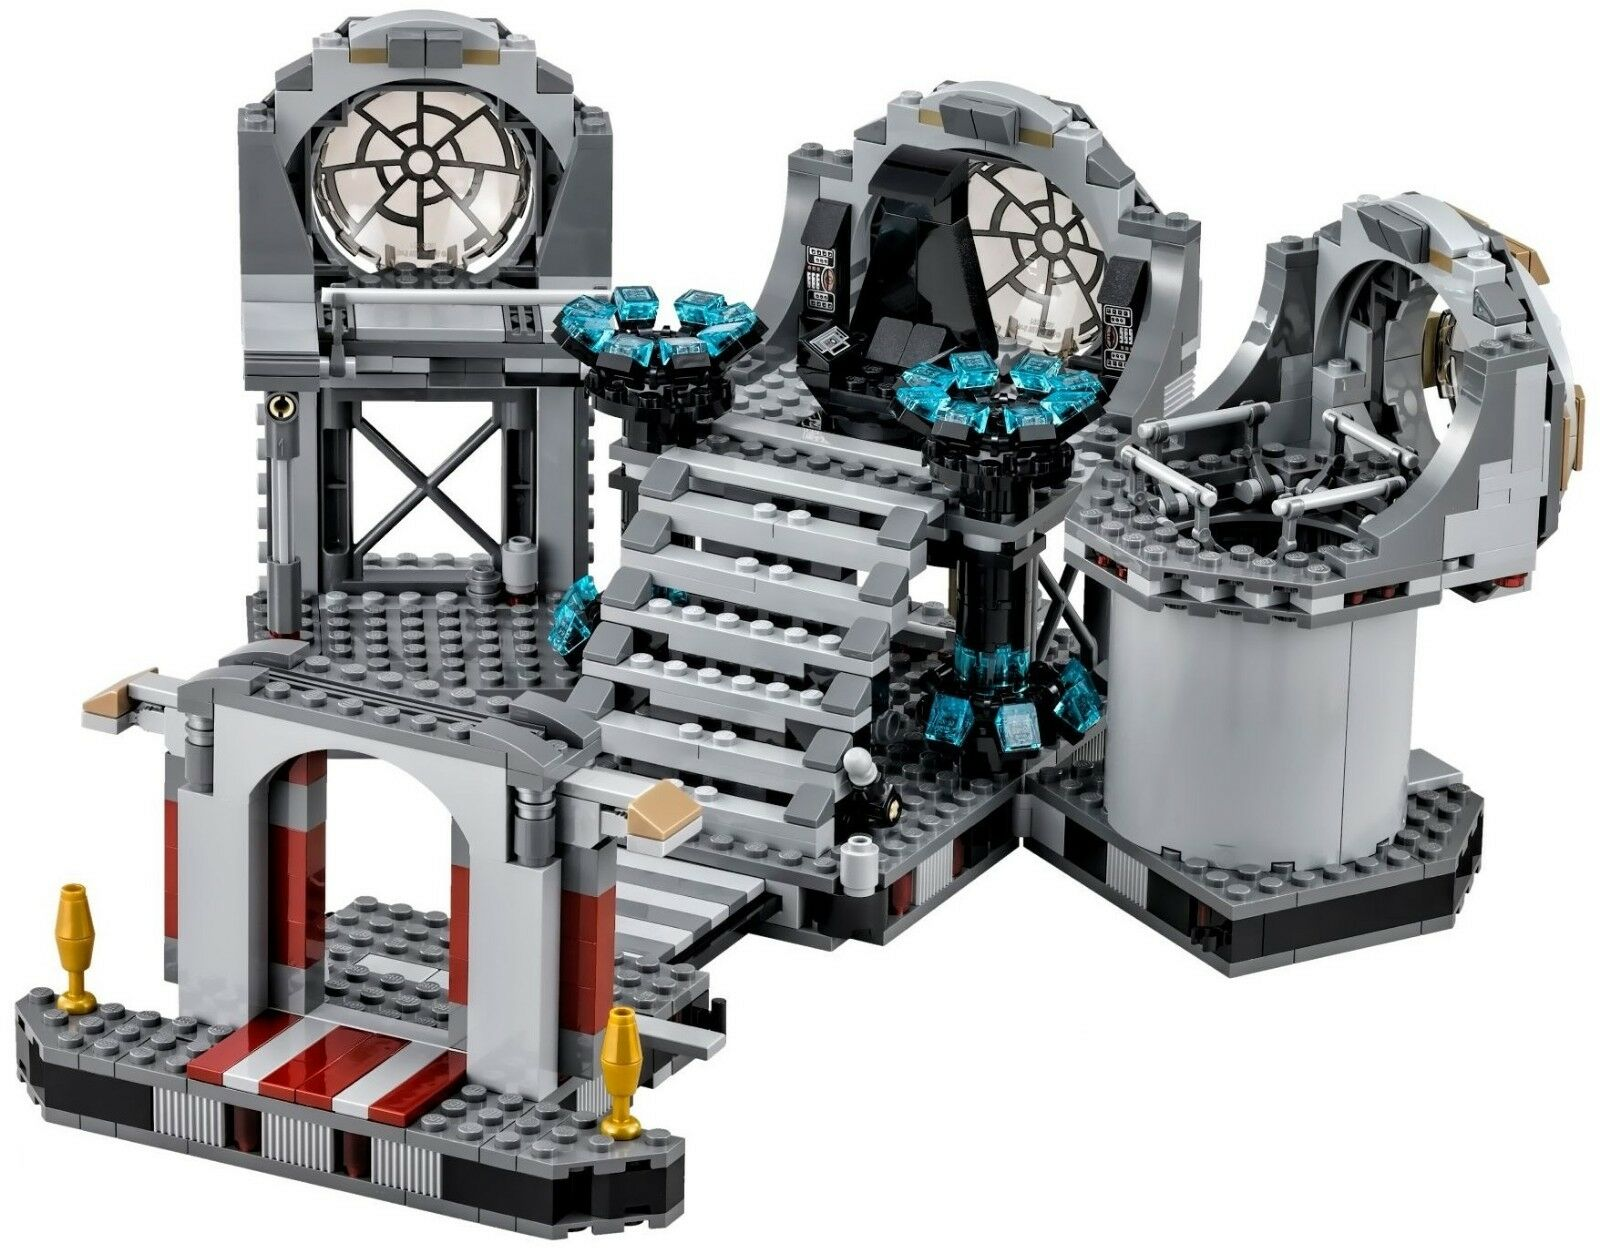 New Lego Star Wars 75093 Death Star Final Duel. no figs, accessories or spares